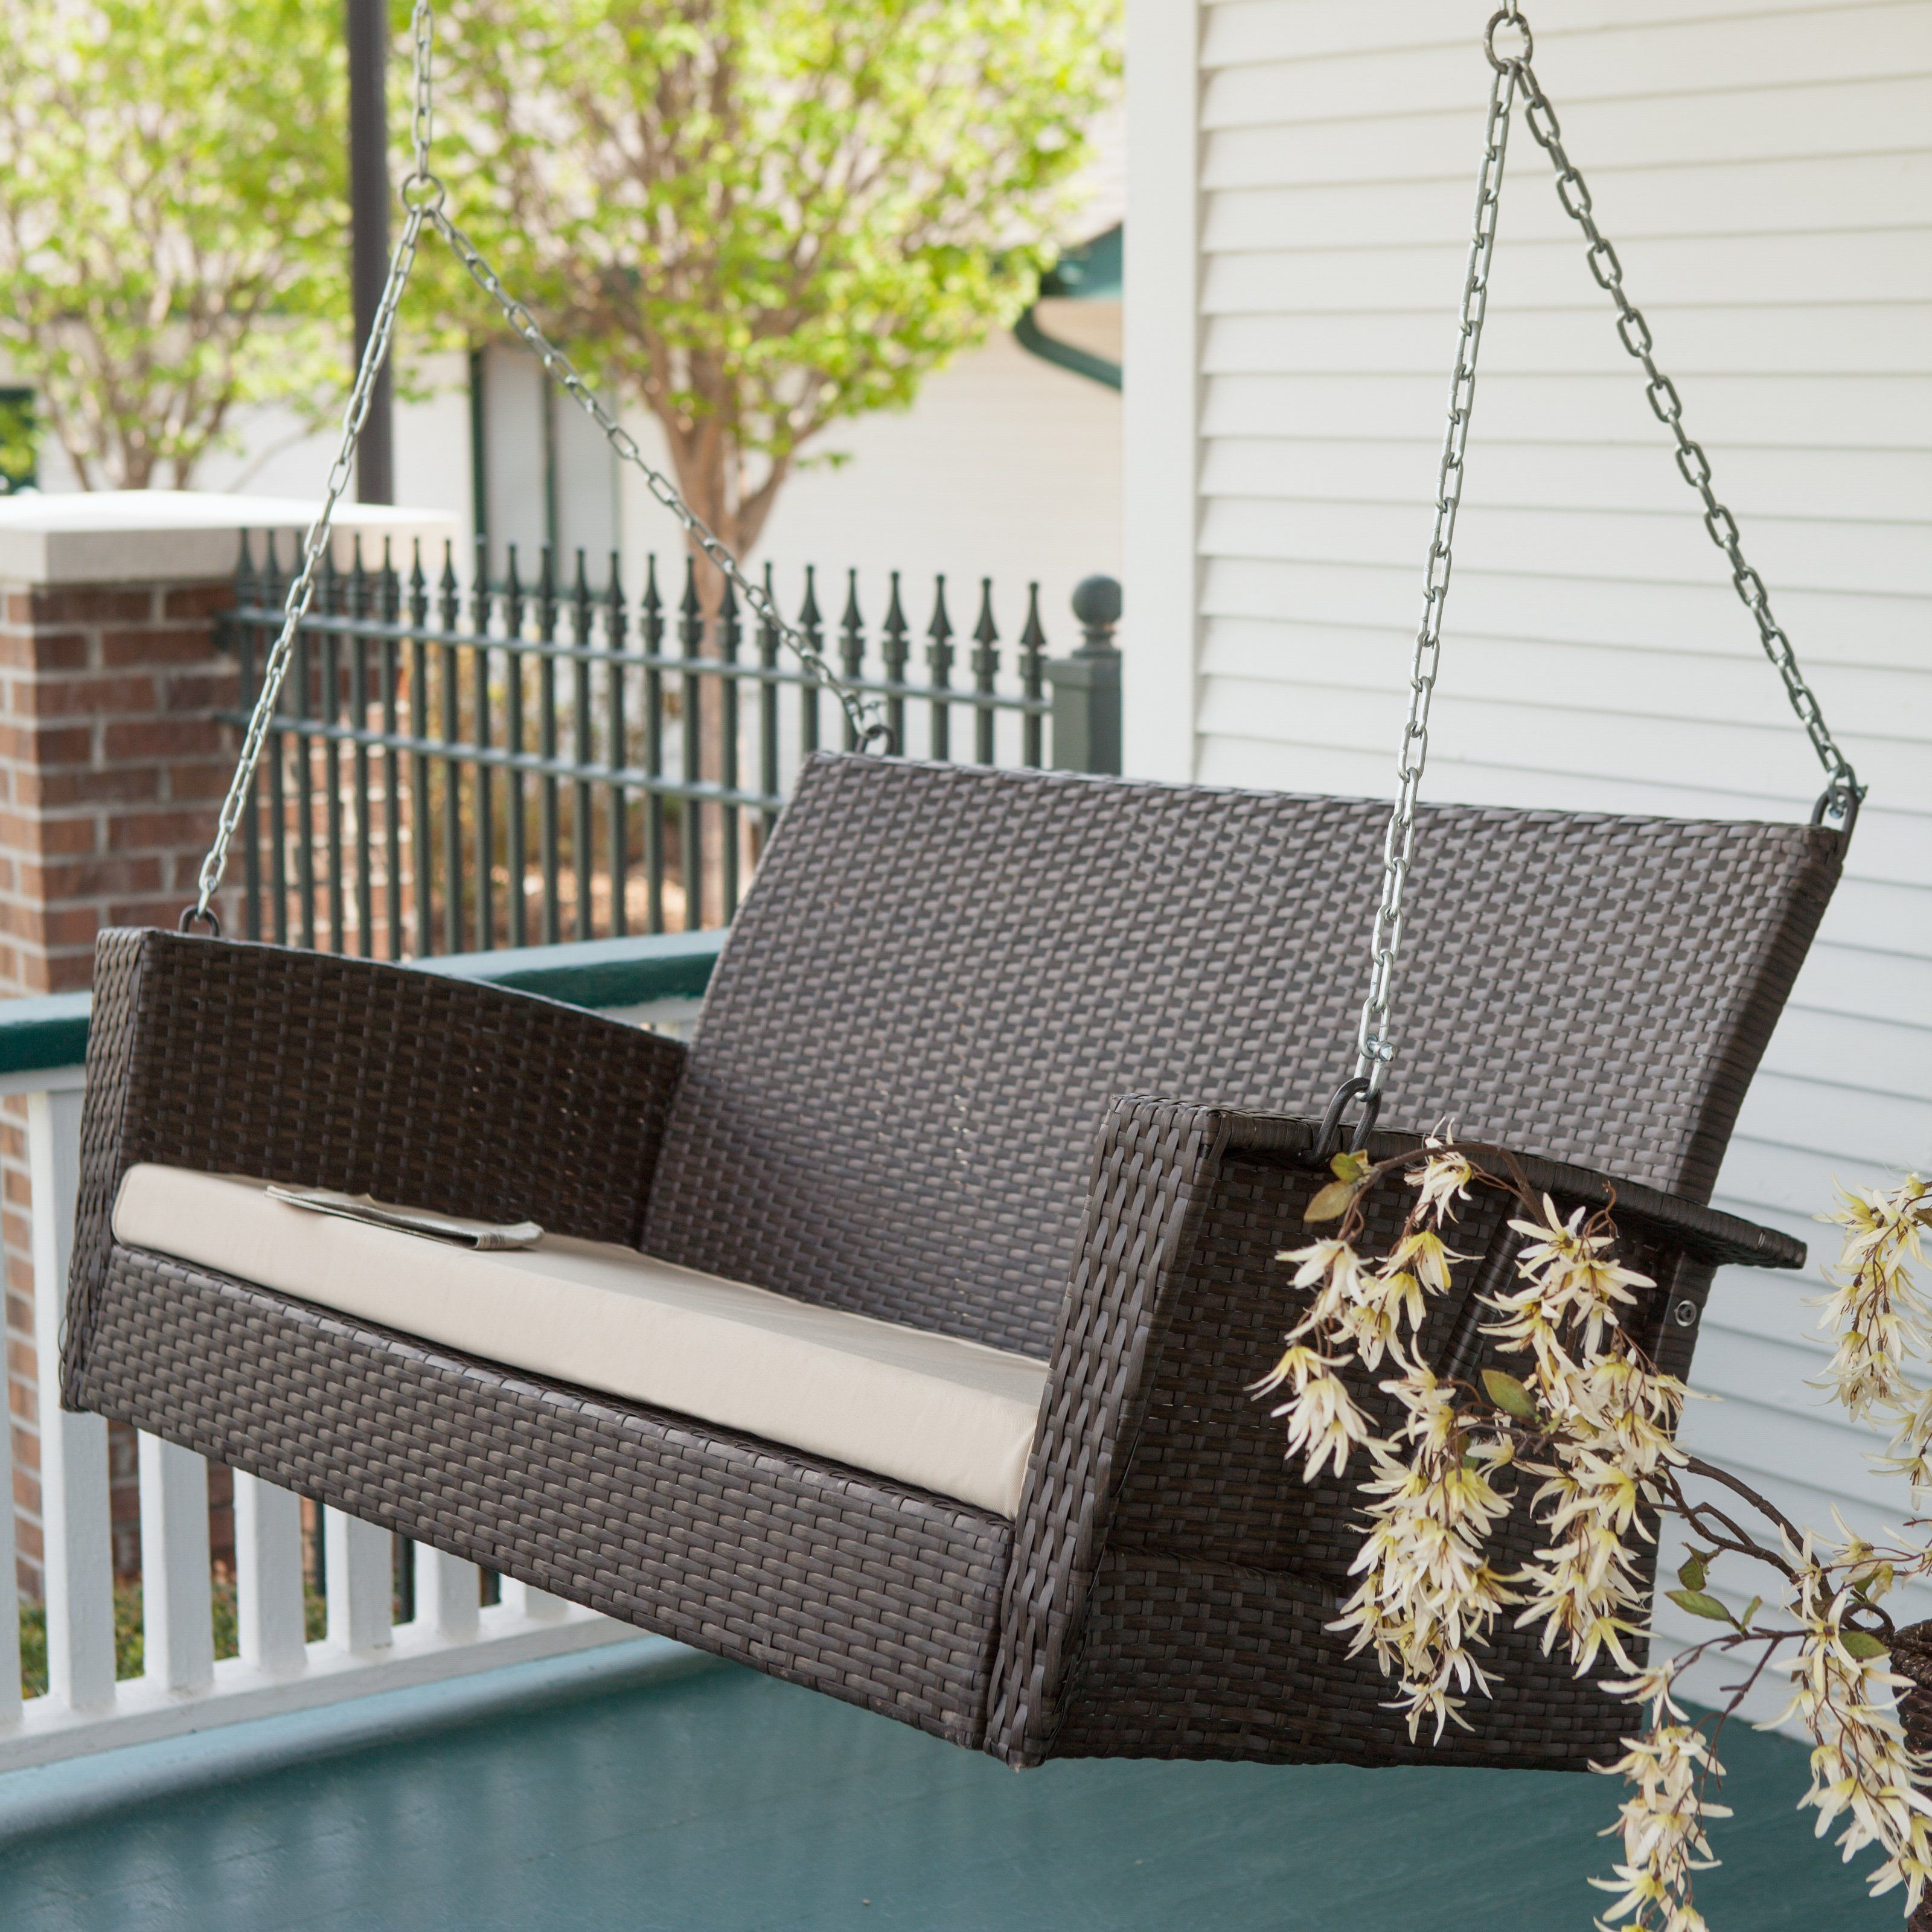 repair surprising size patio burgandytdoor without back chairoutdoor dining chair sling full vantage abate inspirations photo of chairsoutdoor swing chairs repairoutdoor outdoor